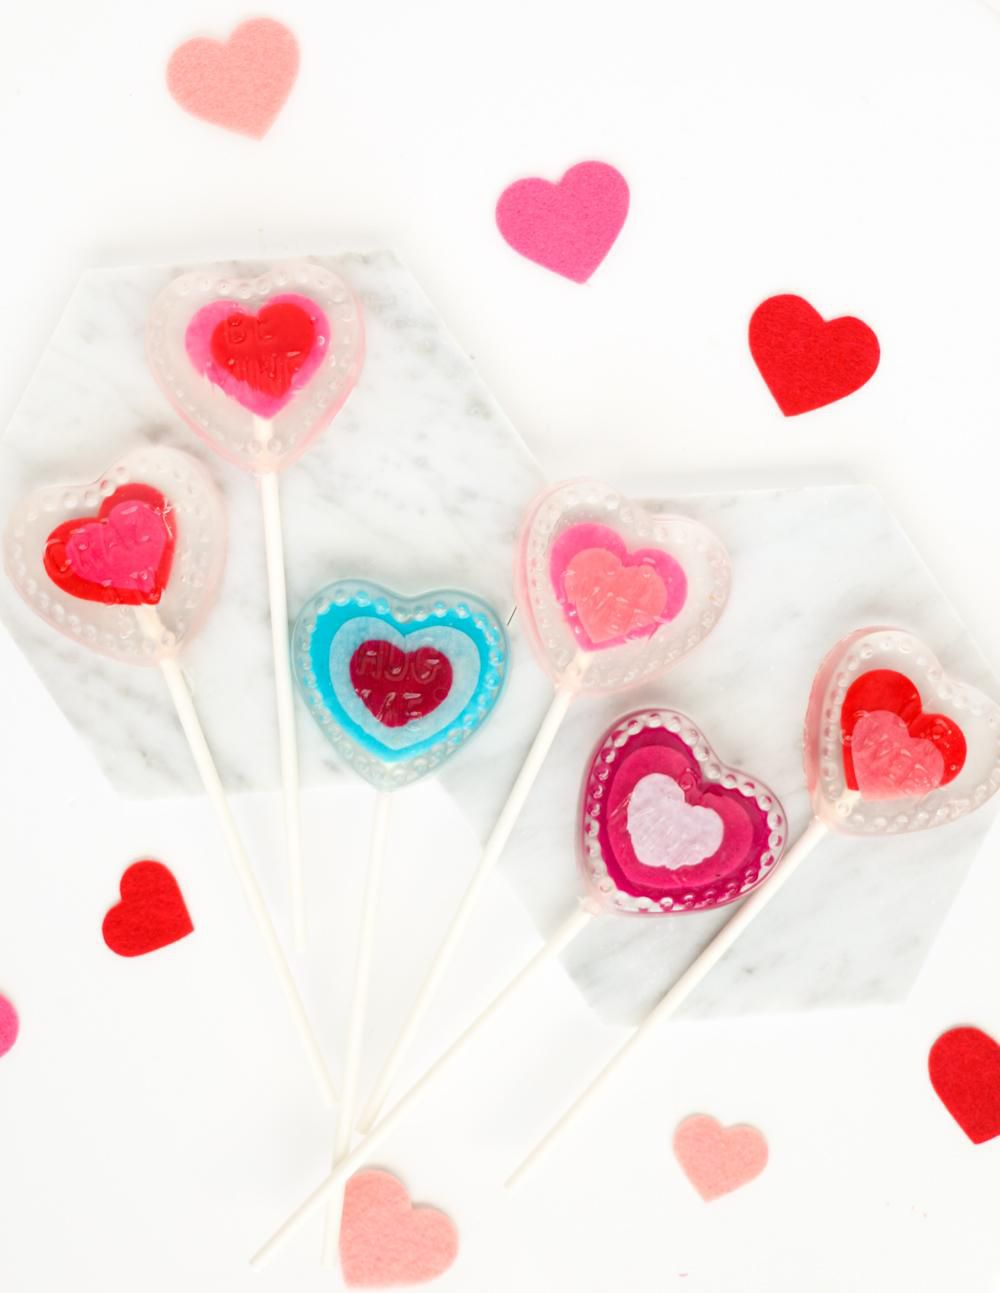 inspiration cute creativeidea loveisintheair handmadecrafts valentine soapvalentives happyvalentinesday giftidea love soap holiday diy